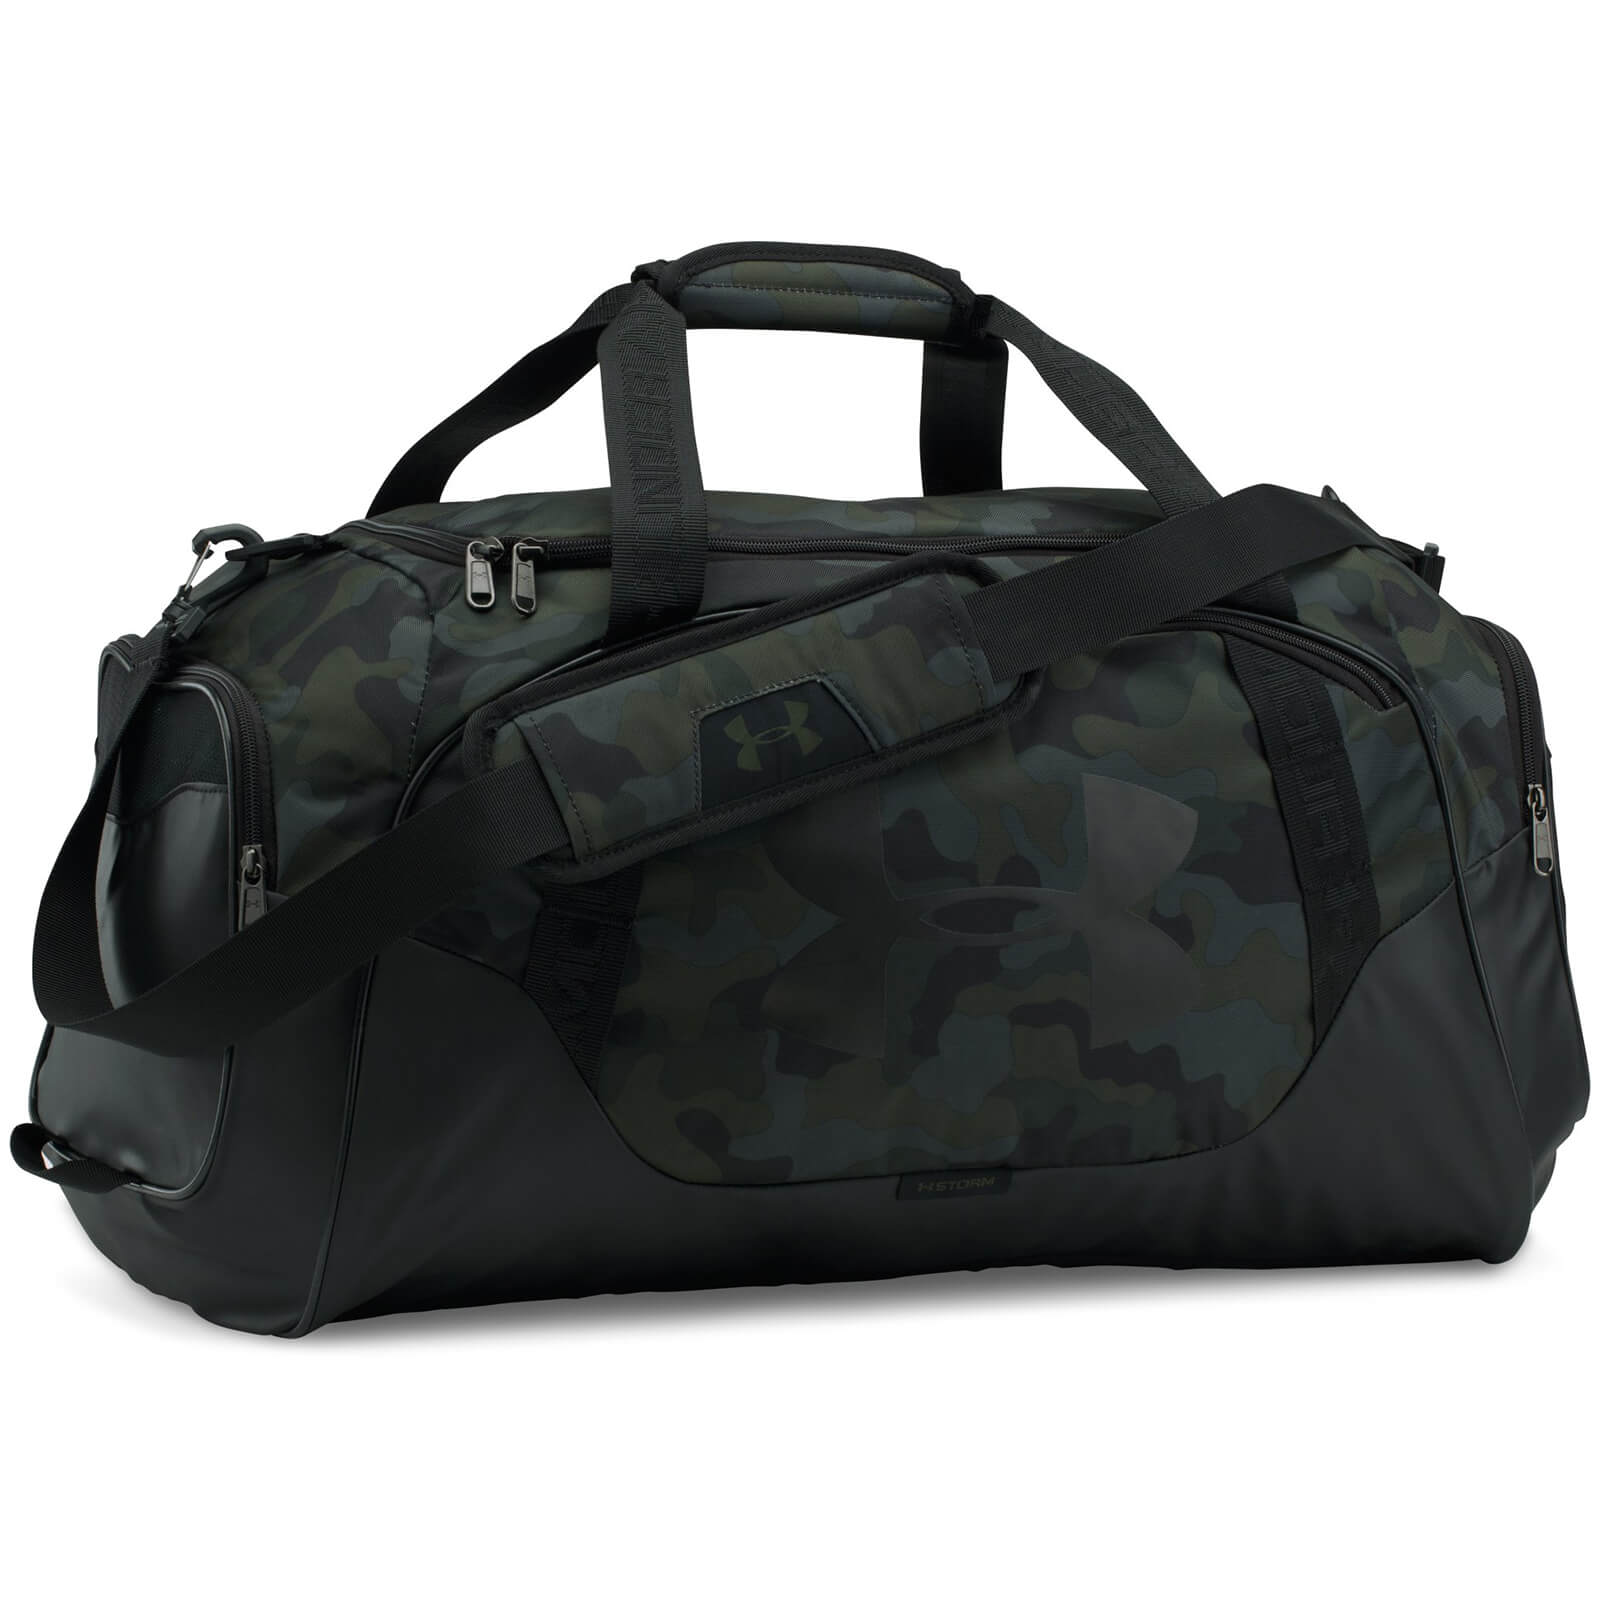 Under Armour Undeniable Duffle Bag 3.0 - Medium - Camo